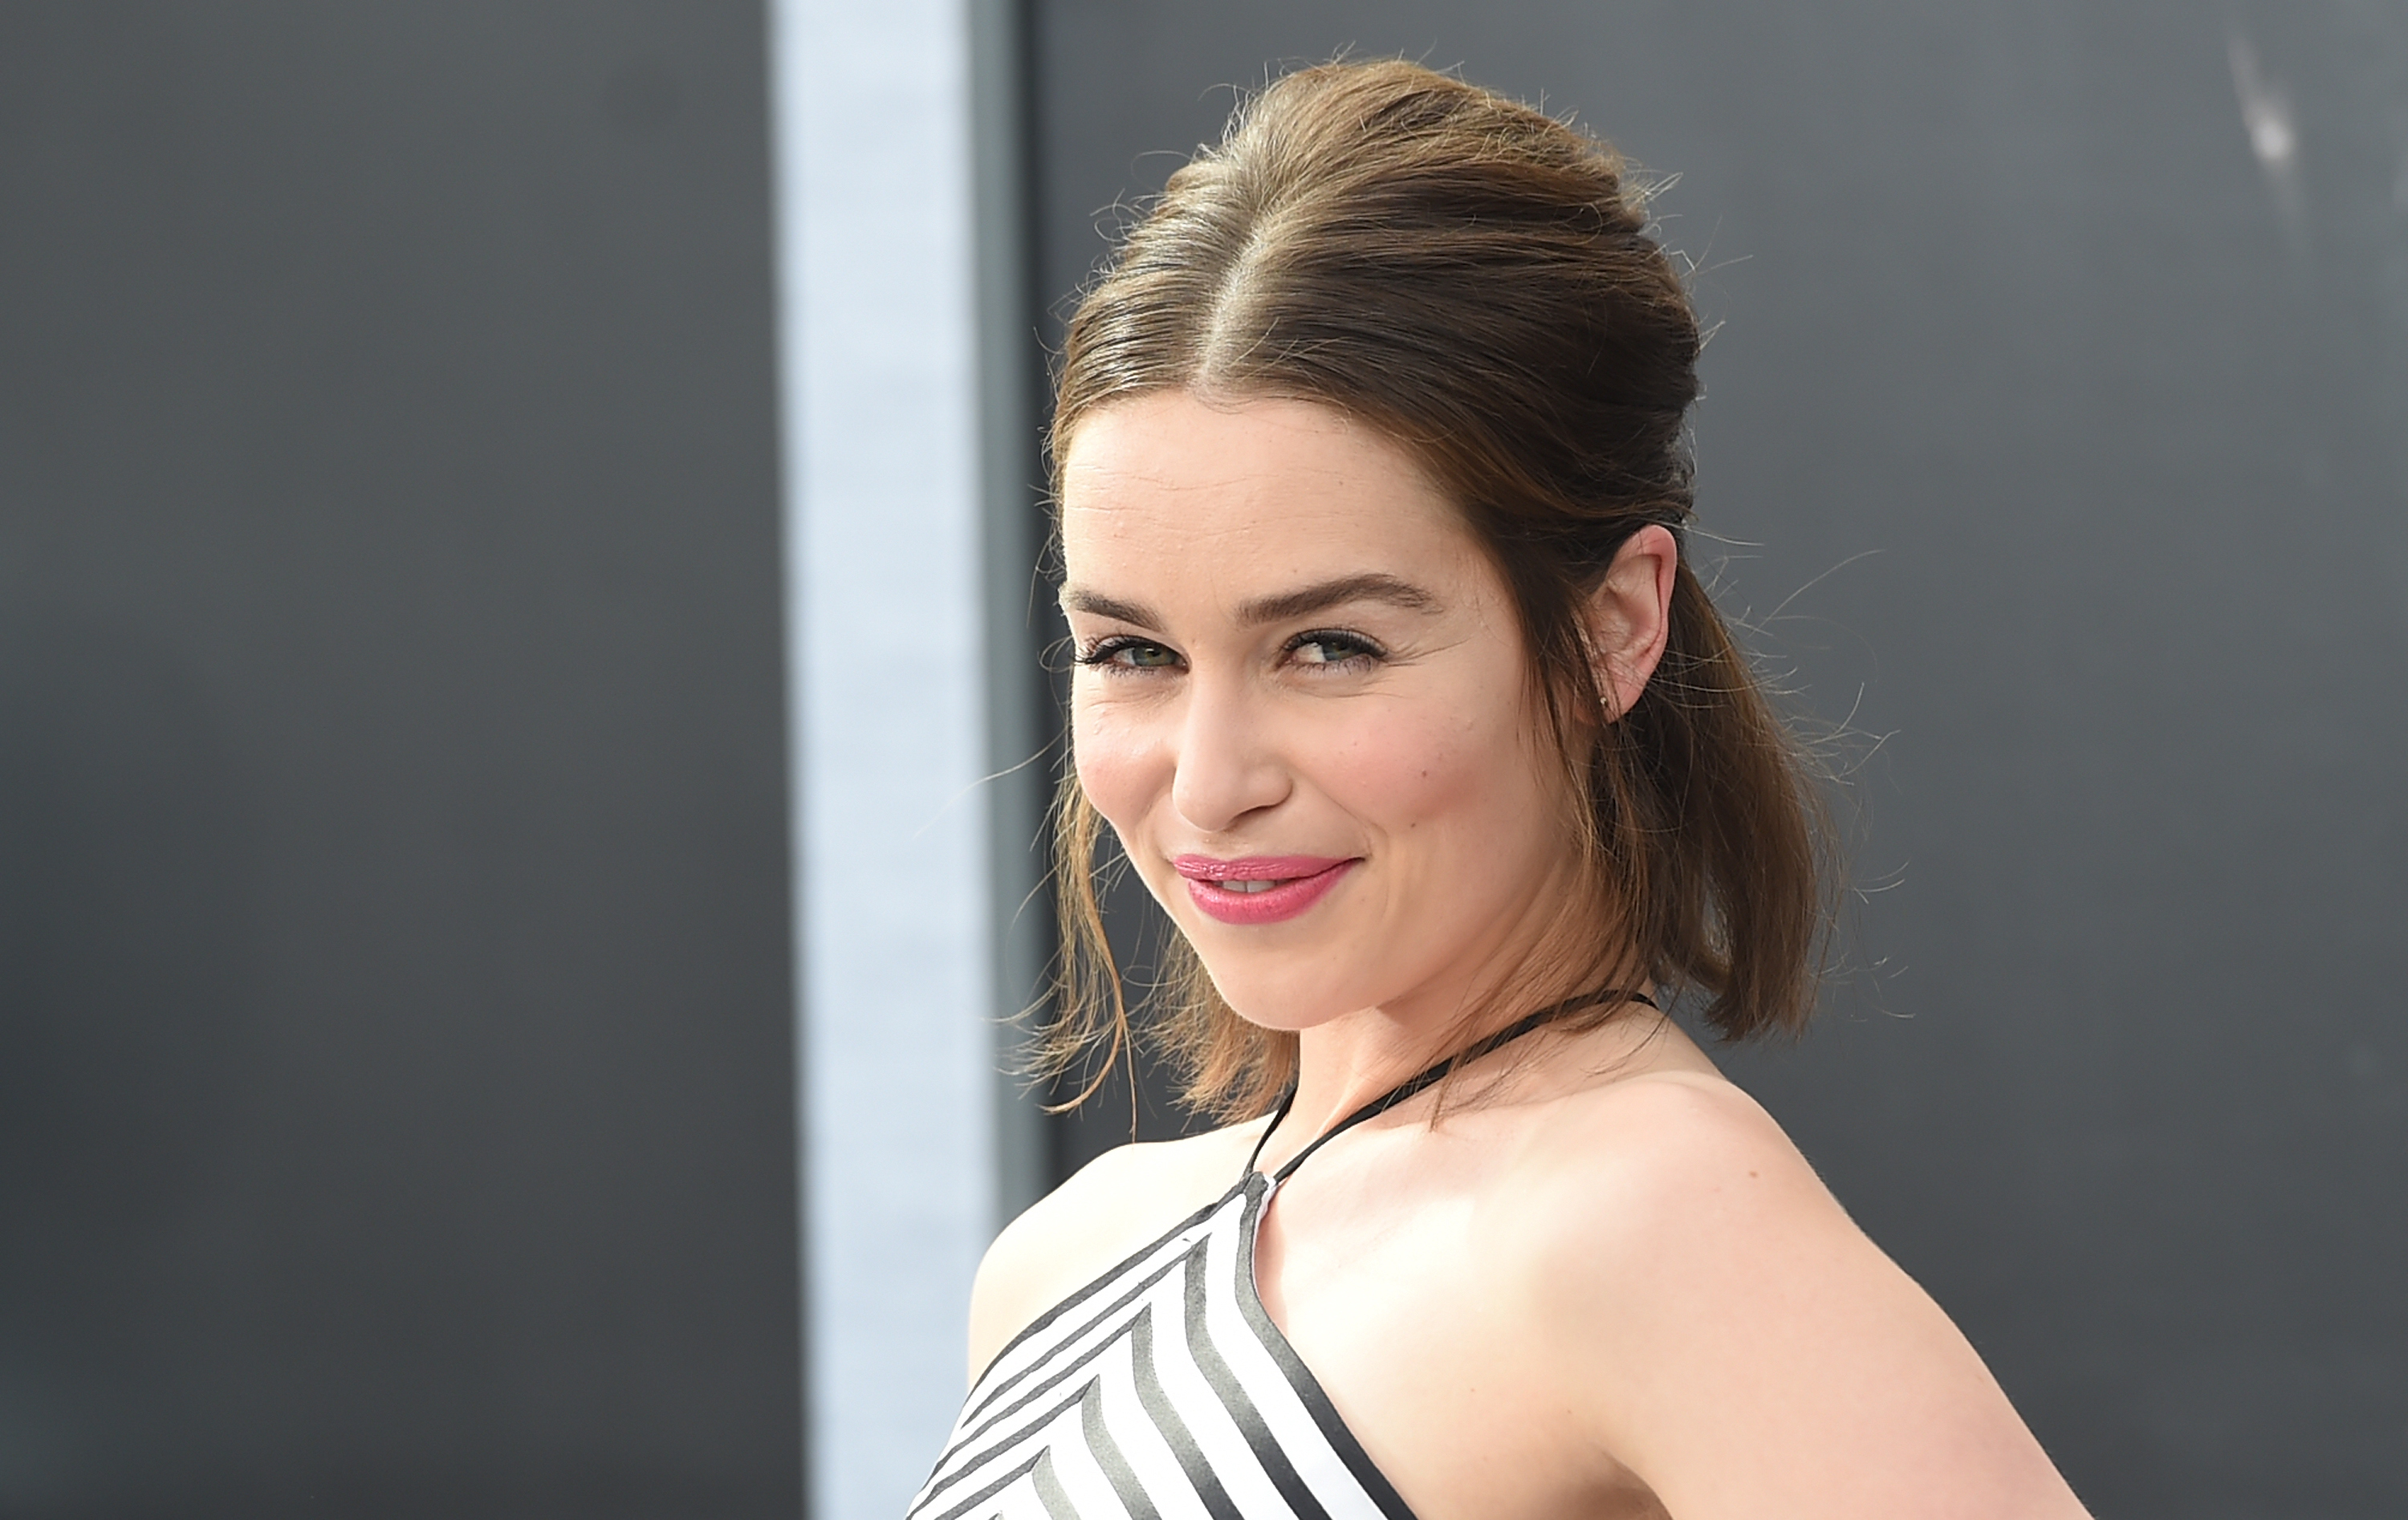 Emilia Clarke was Stunned by the Upcoming Season of Game of Thrones 01/16/2018 3